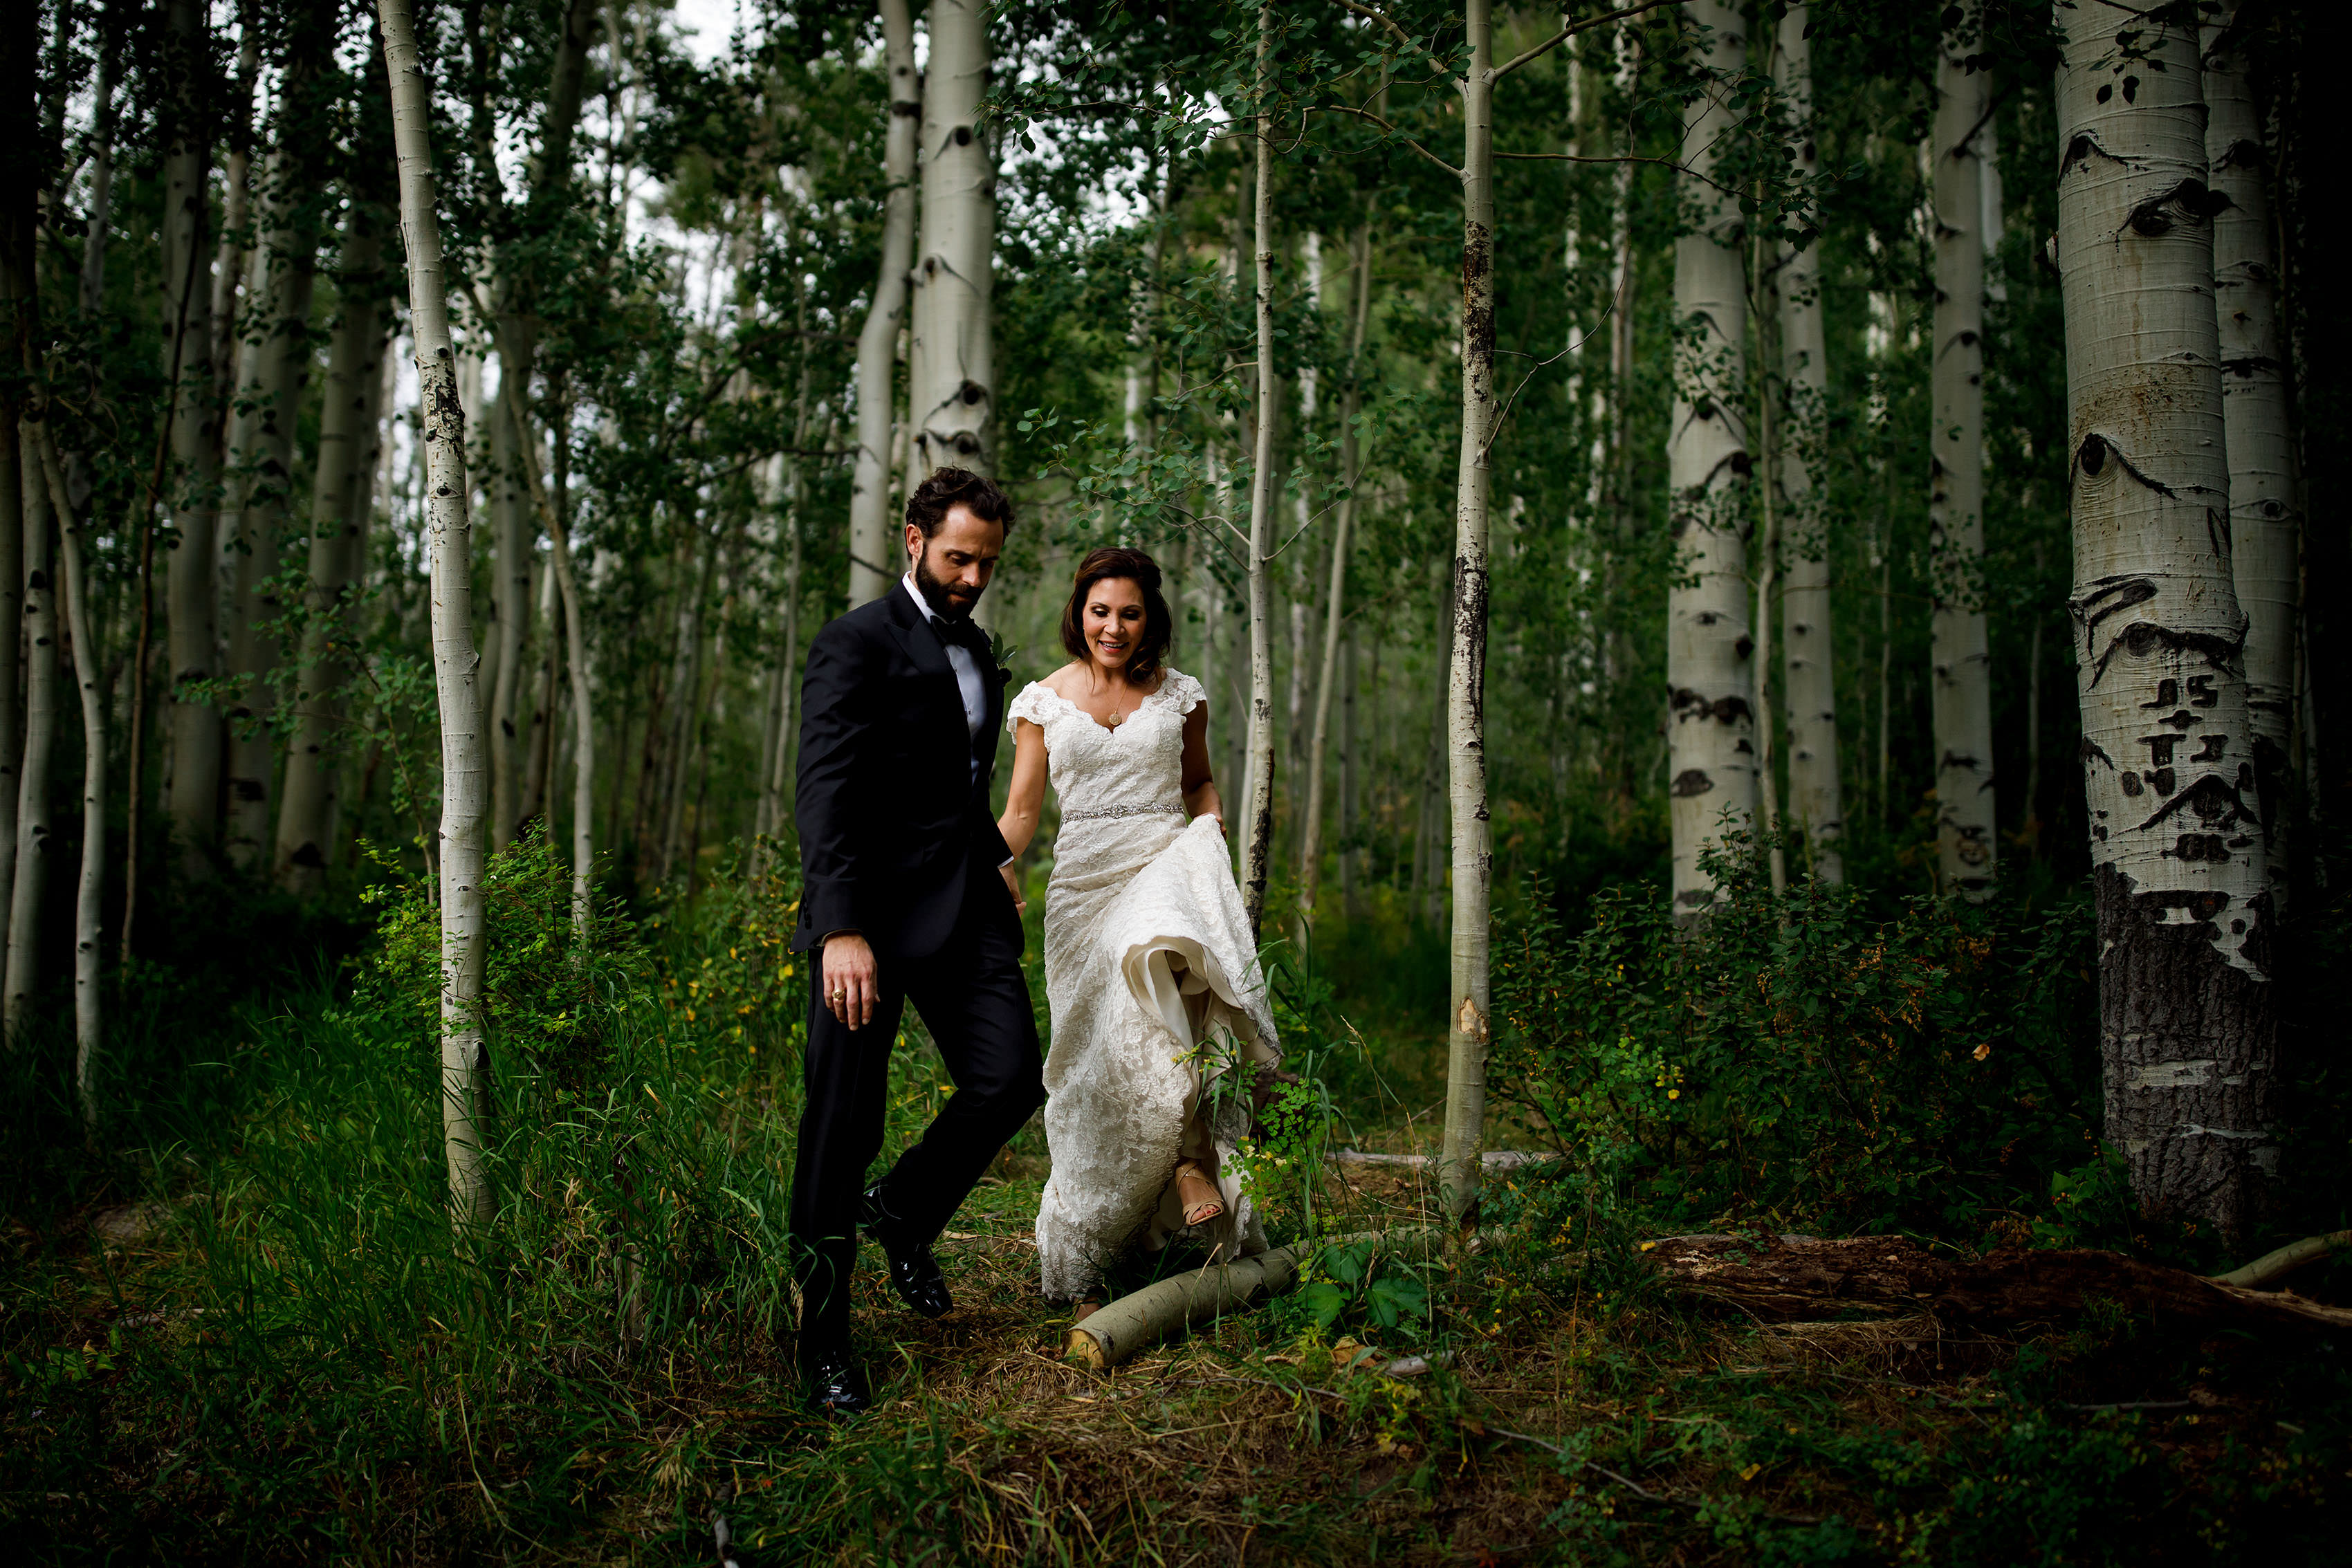 The groom helps the bride out of a grove of aspen trees